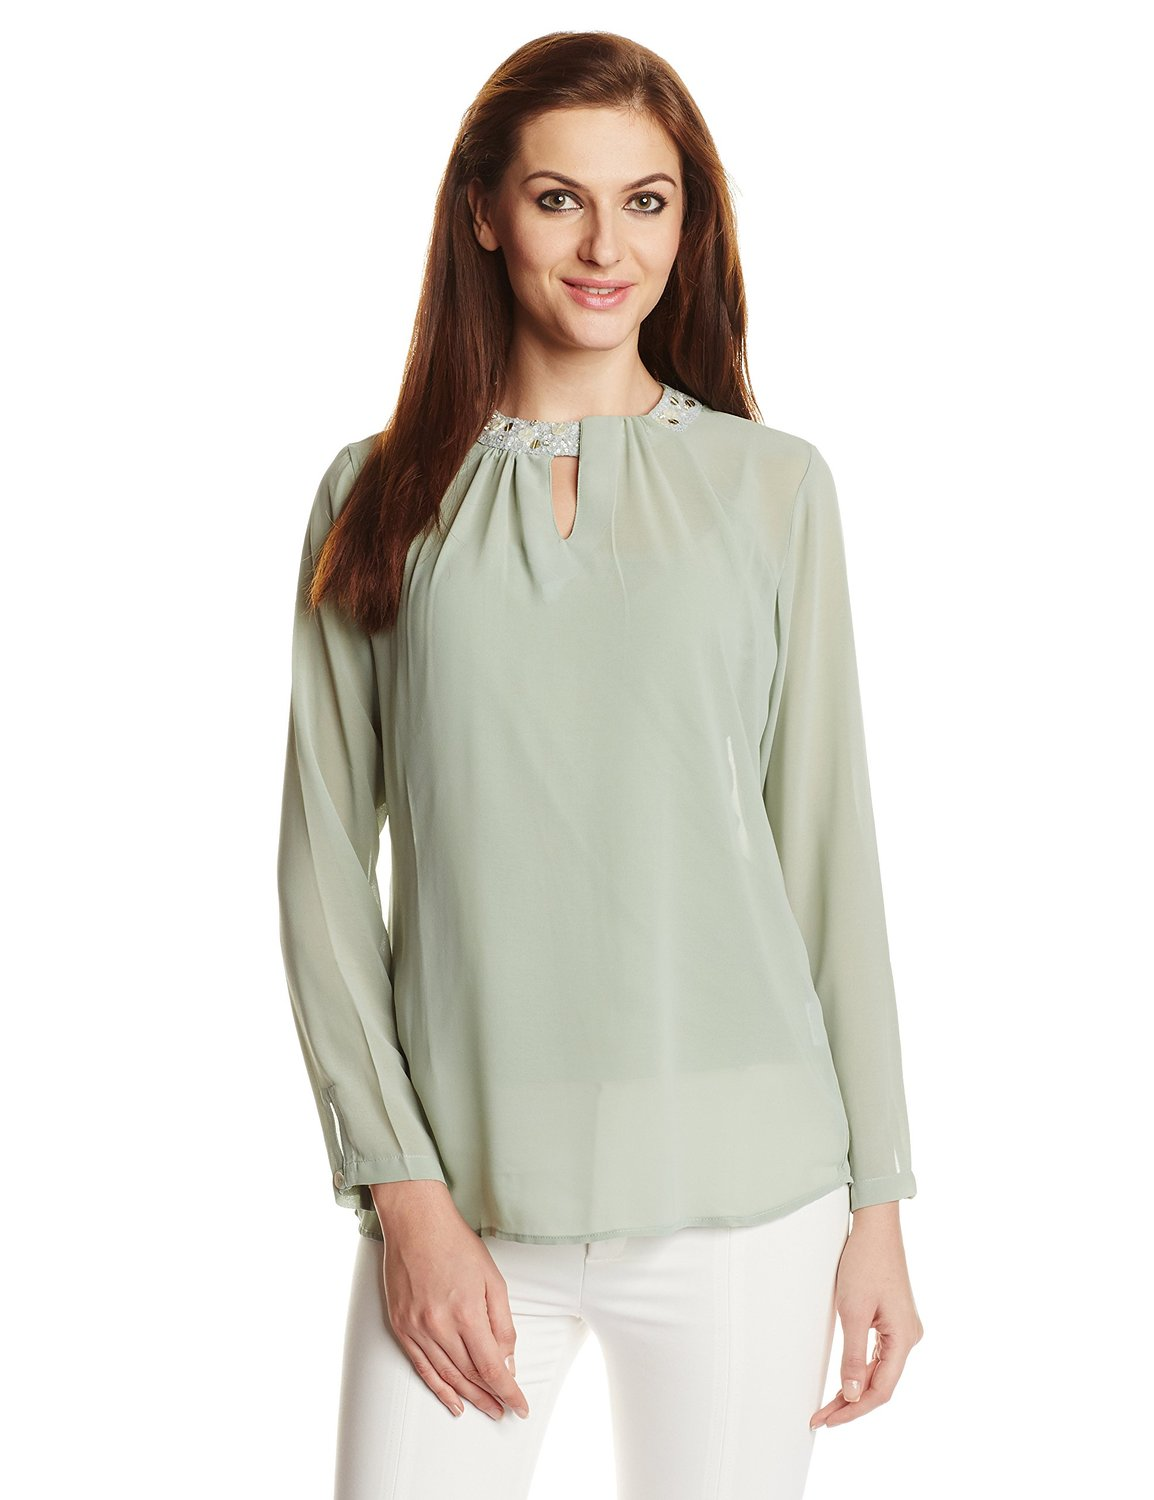 And-Women Blouse Shirt